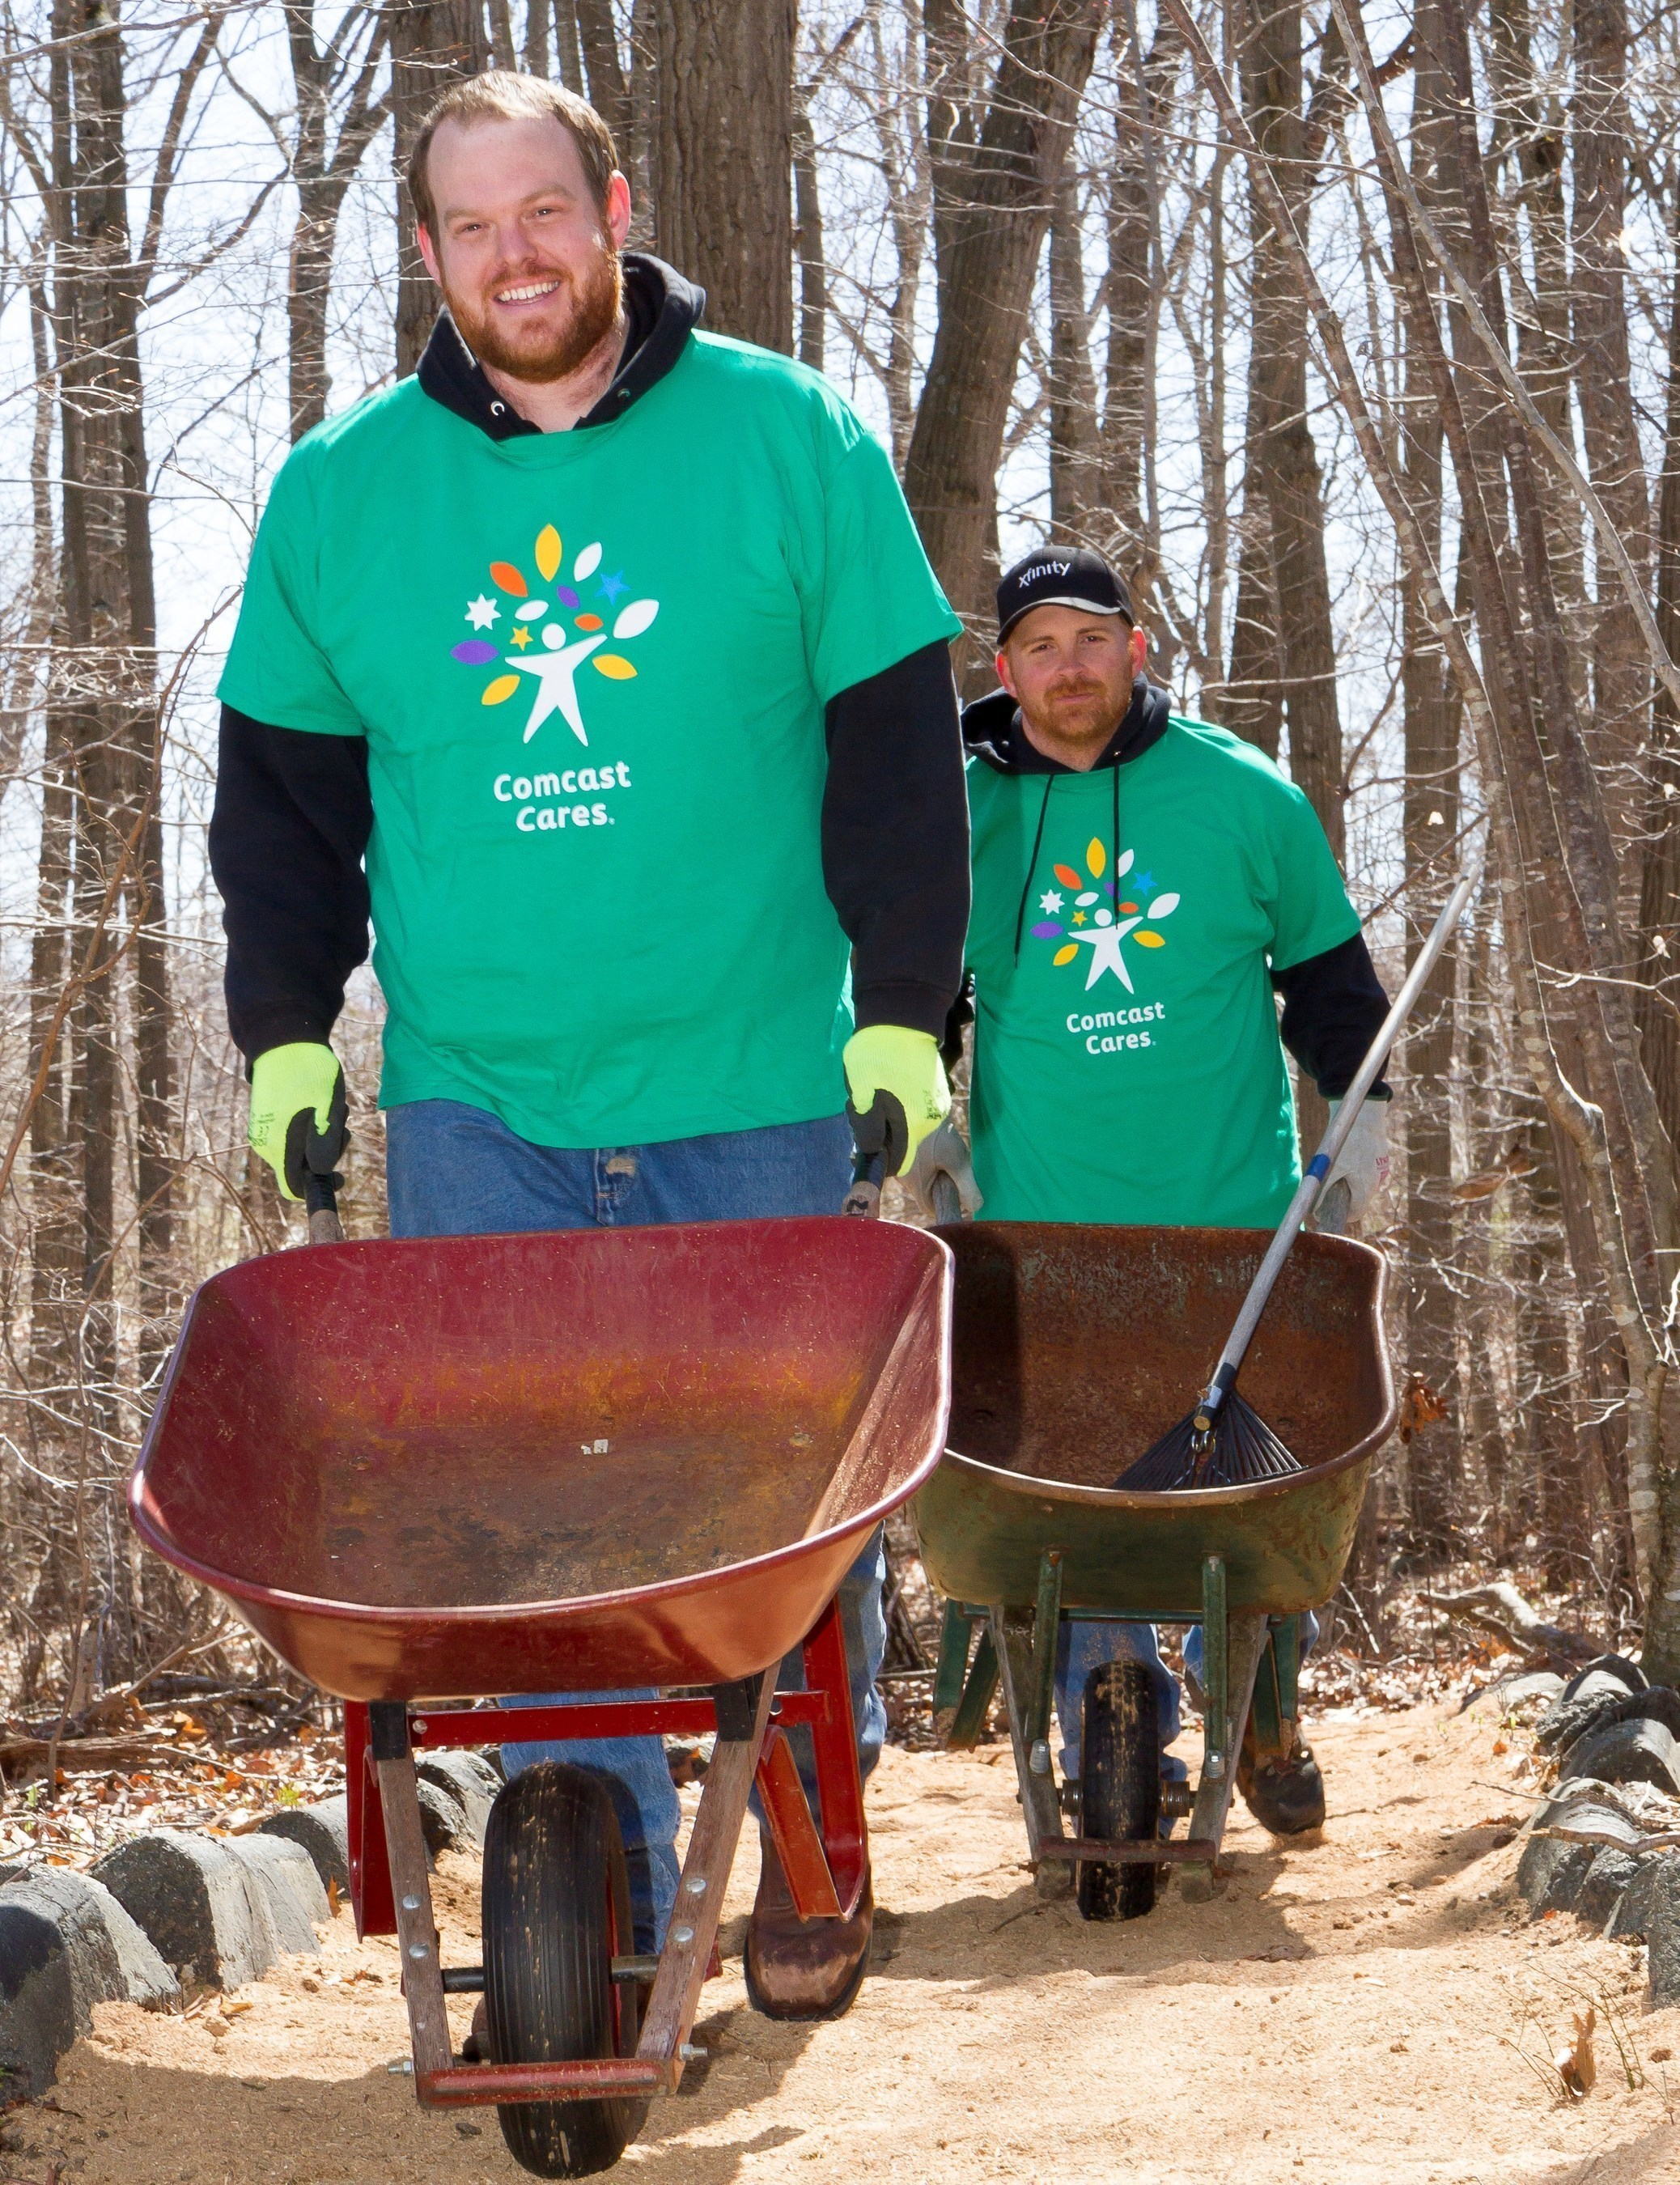 """More than 650 local Comcast NBCUniversal employees and their families, friends and community partners will """"make change happen"""" as they volunteer to improve eight sites across Connecticut as part of the 15th annual Comcast Cares Day."""